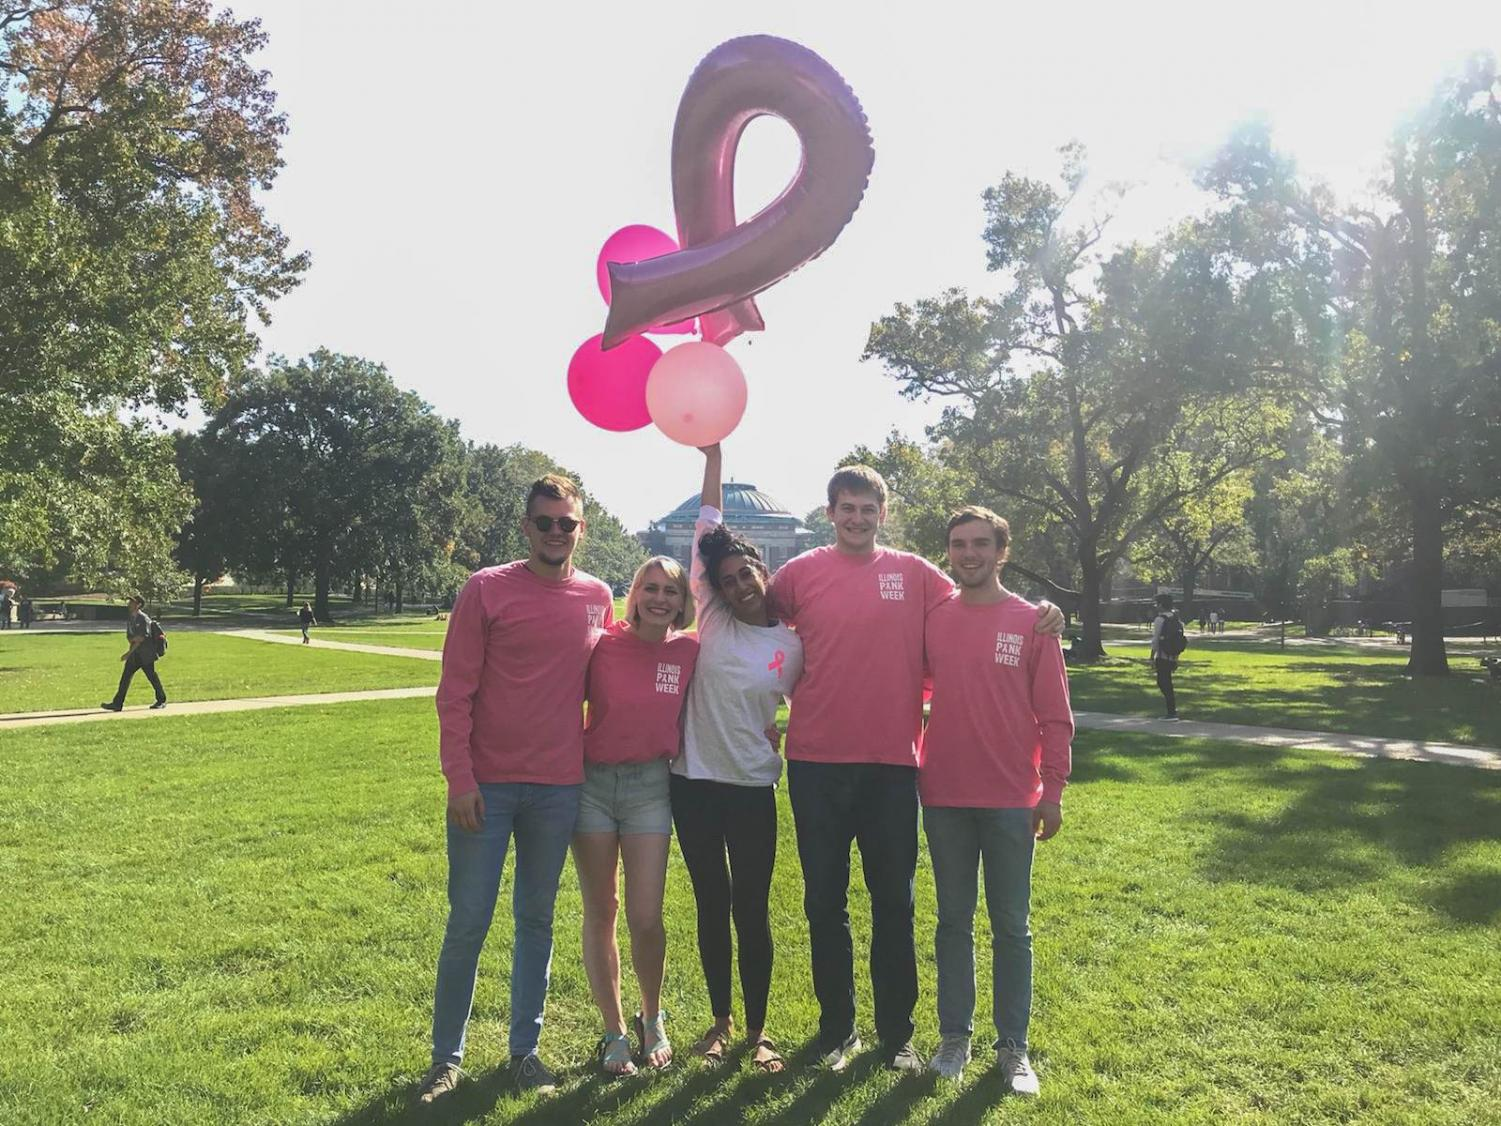 Pink Week is dedicated to breast cancer awareness. Colleges Against Cancer is hosting fundraising events during the week as part of its plans for Breast Cancer Awareness Month.